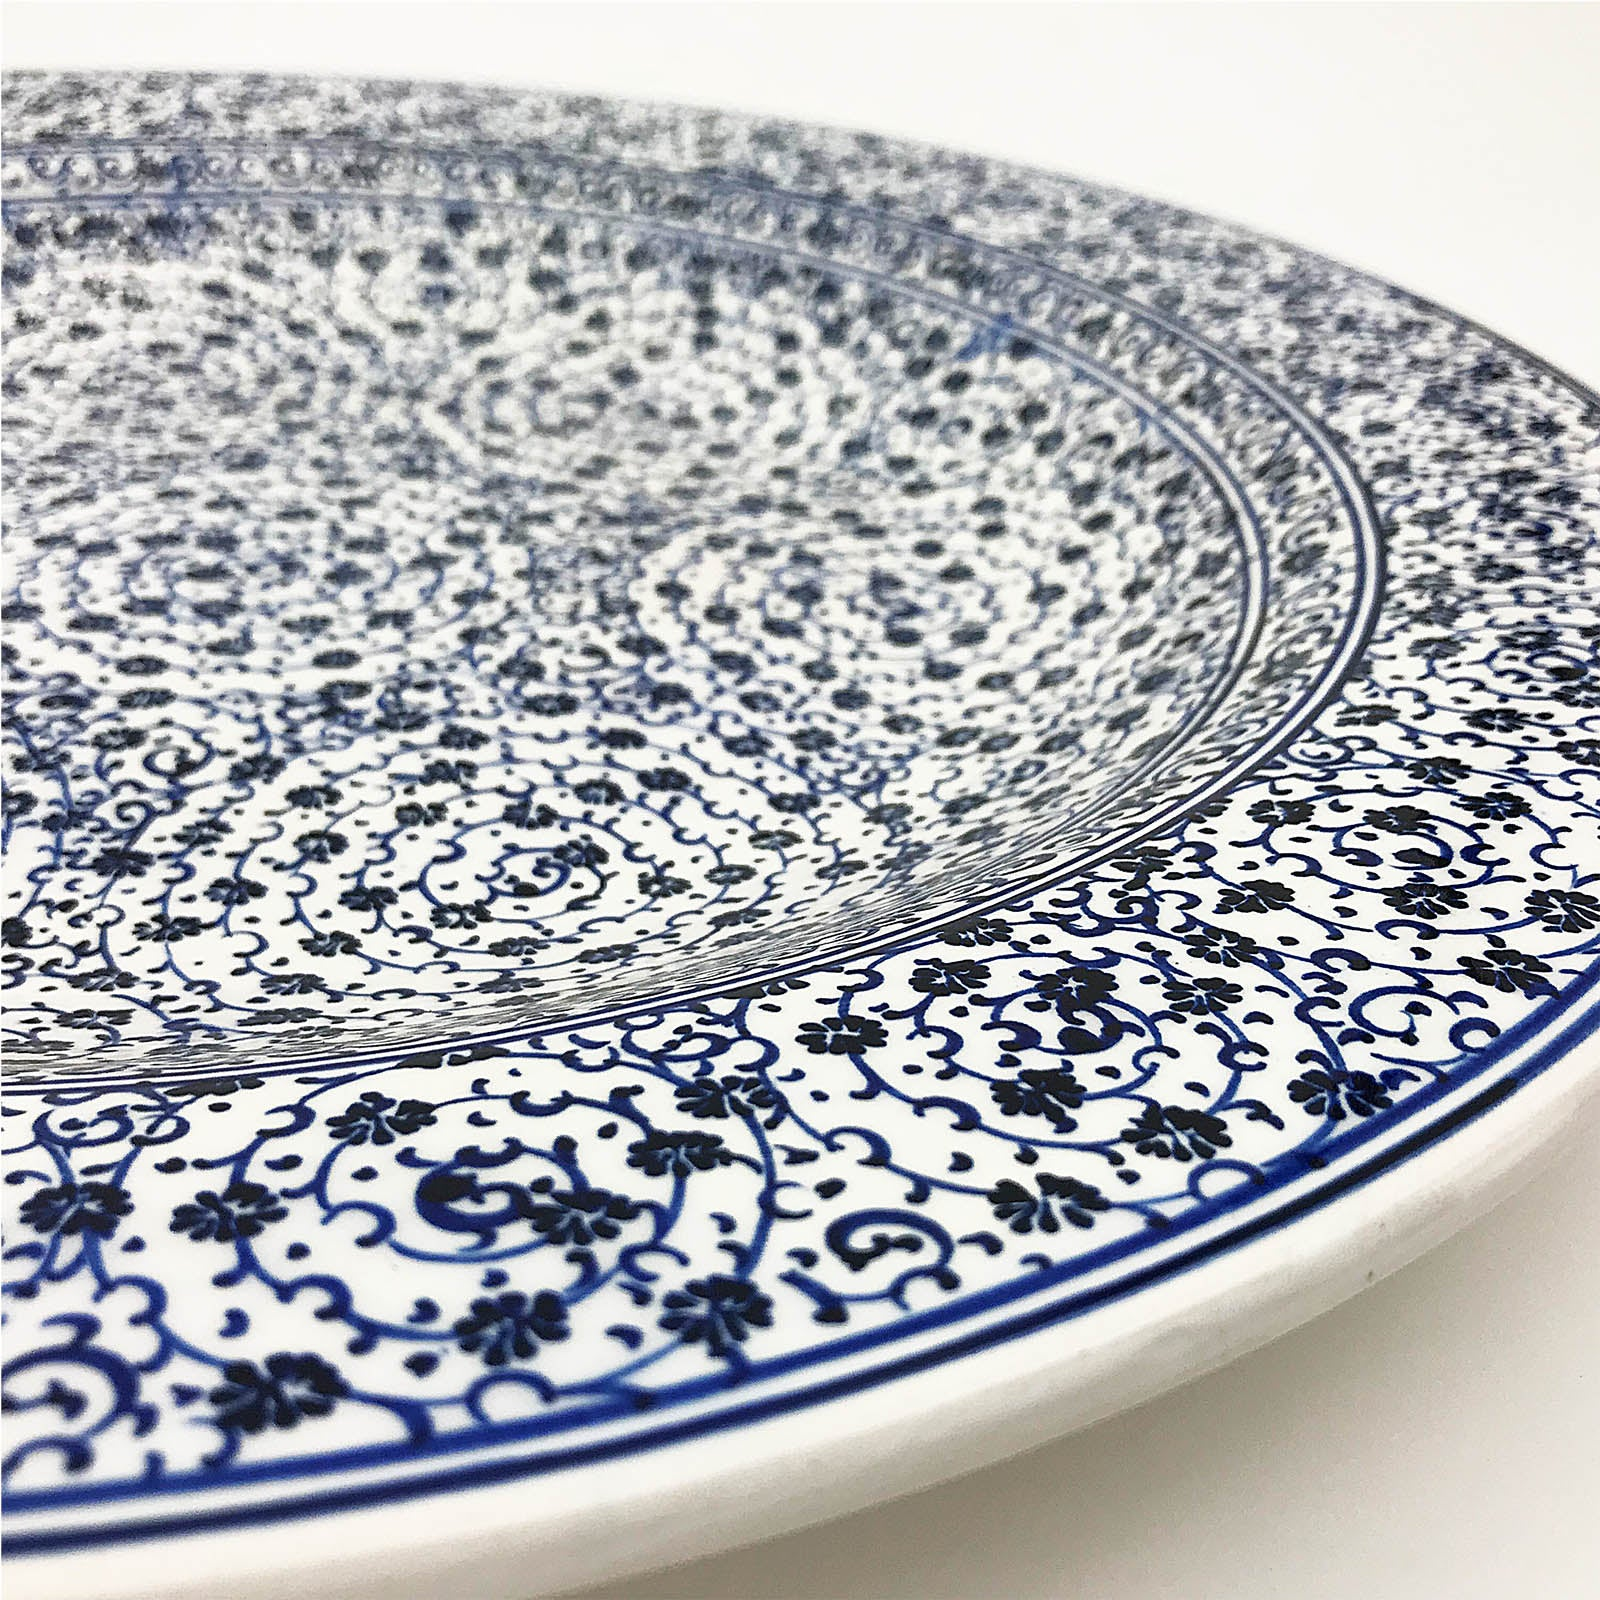 Handmade Kutaya Turkish ceramic plate  KUC013